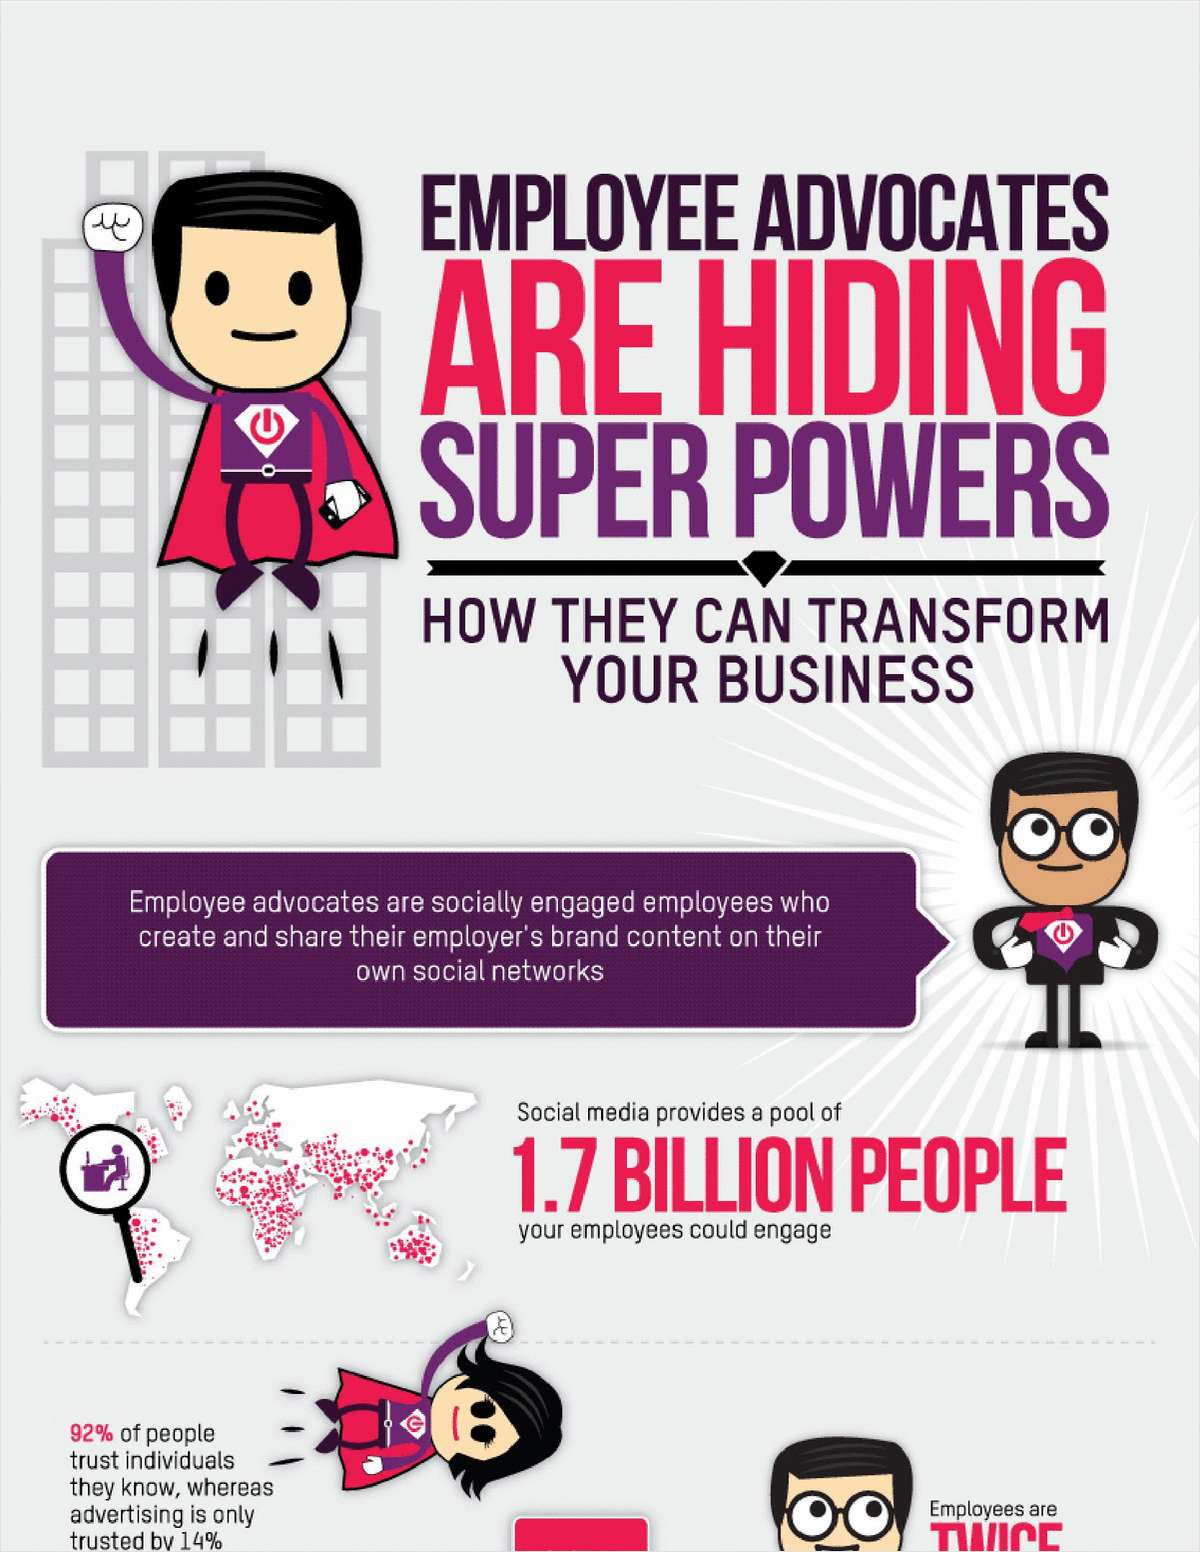 10+ Reasons Why Employee Advocates are Super Heroes That Will Transform Your Business